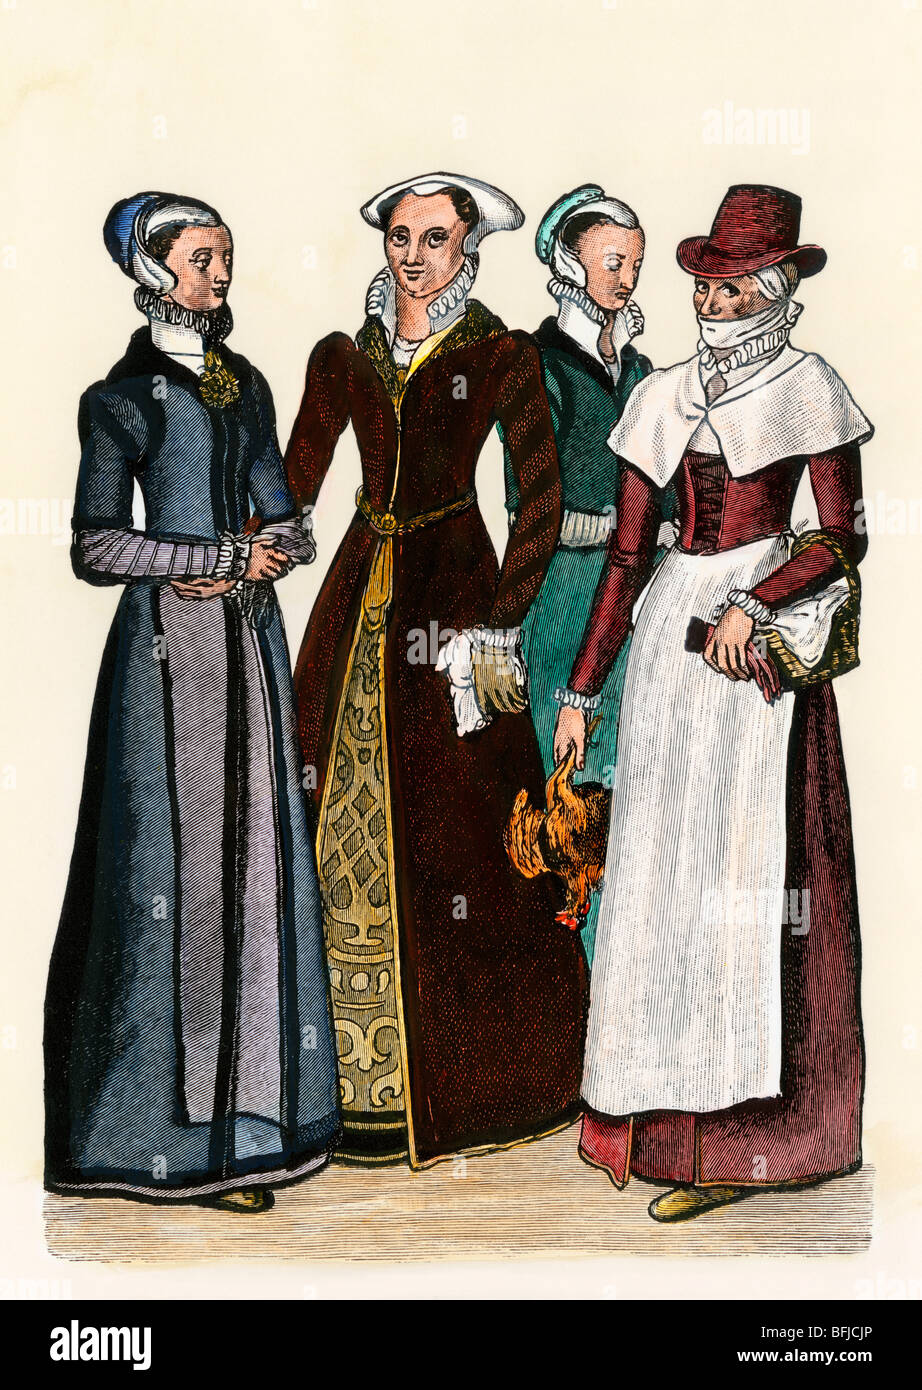 City women and a country-woman in Elizabethan England, 1500s. Hand-colored woodcut - Stock Image